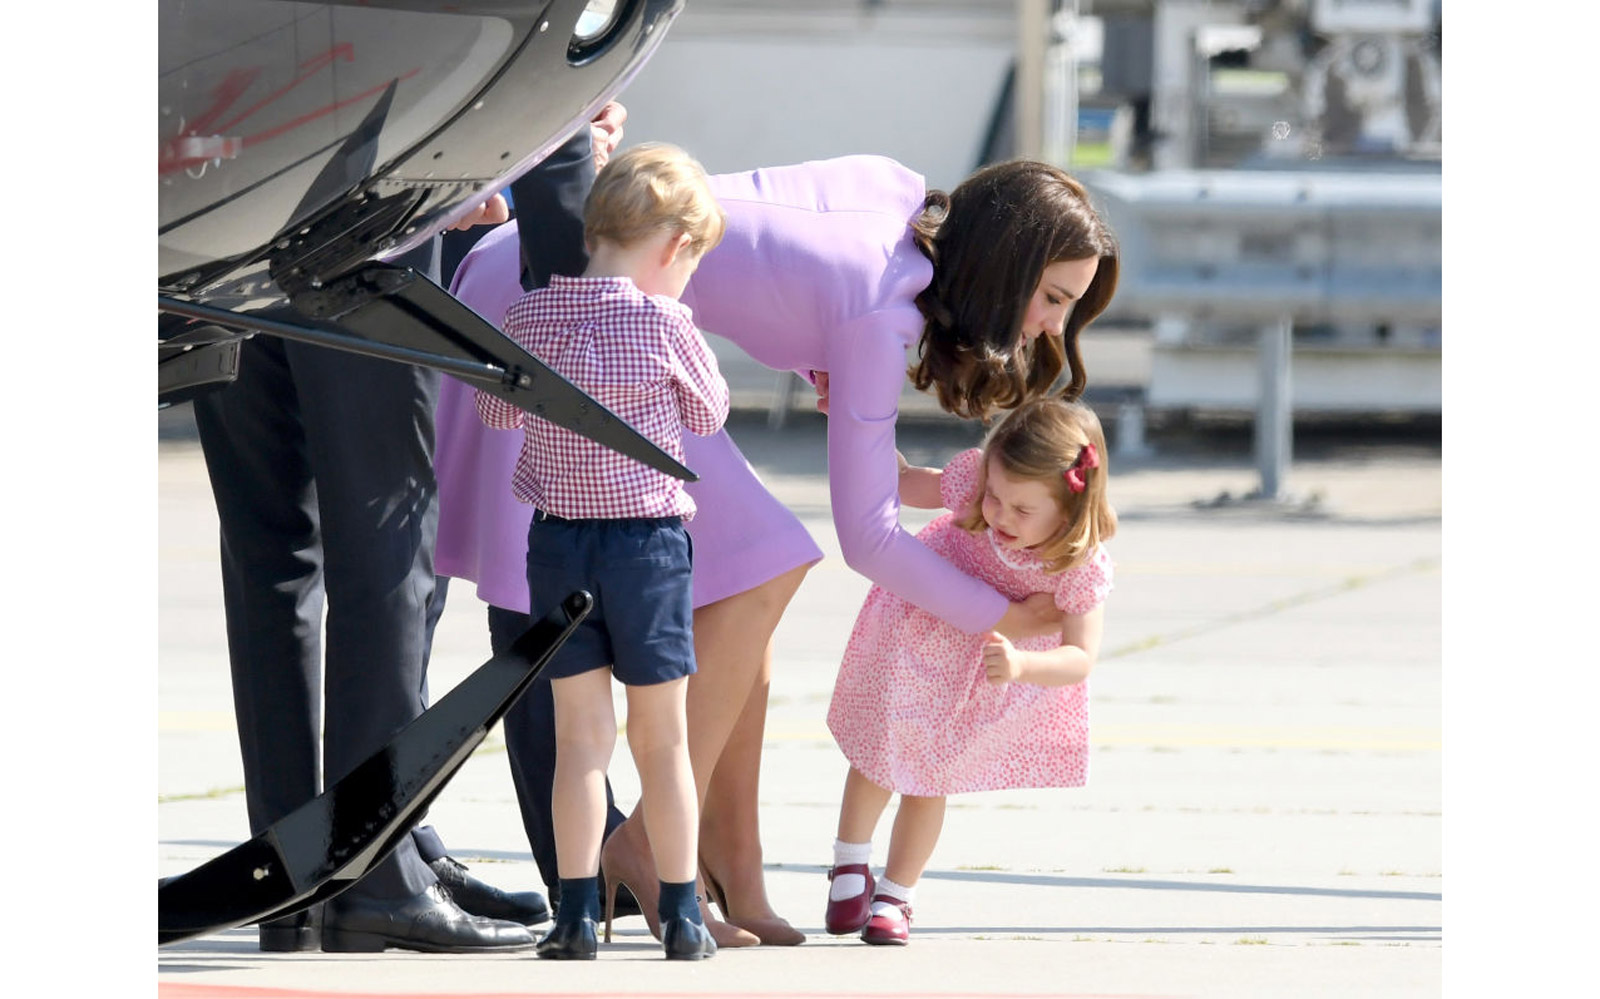 HAMBURG, GERMANY - JULY 21:  Prince George, Princess Charlotte of Cambridge and Catherine, Duchess of Cambridge view helicopter models H145 and H135 before departing from Hamburg airport on the last day of their official visit to Poland and Germany on Jul